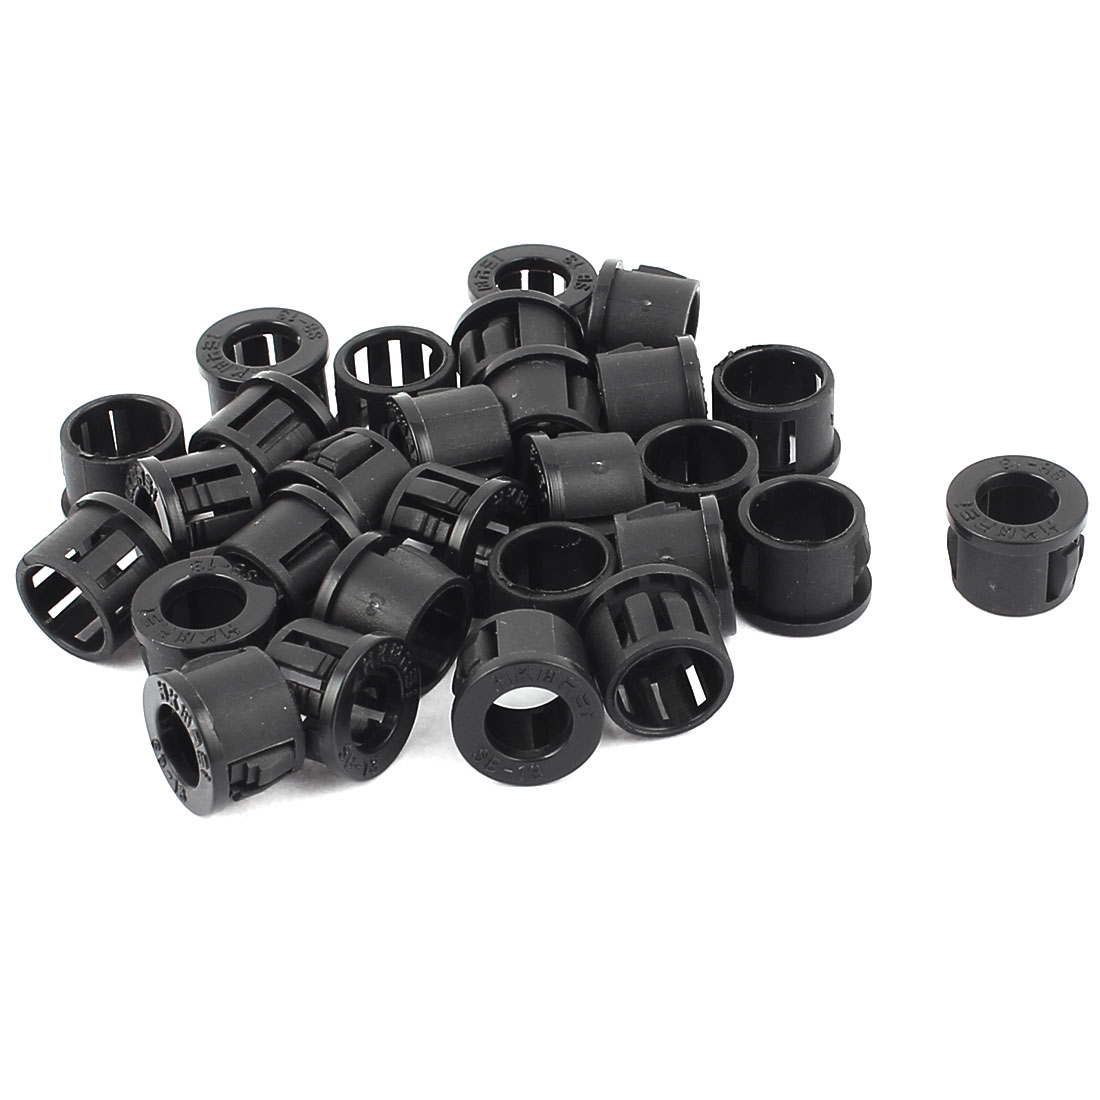 28 Pieces 10mm Panel Hole Round Cable Harness Protector Snap Bushing Black